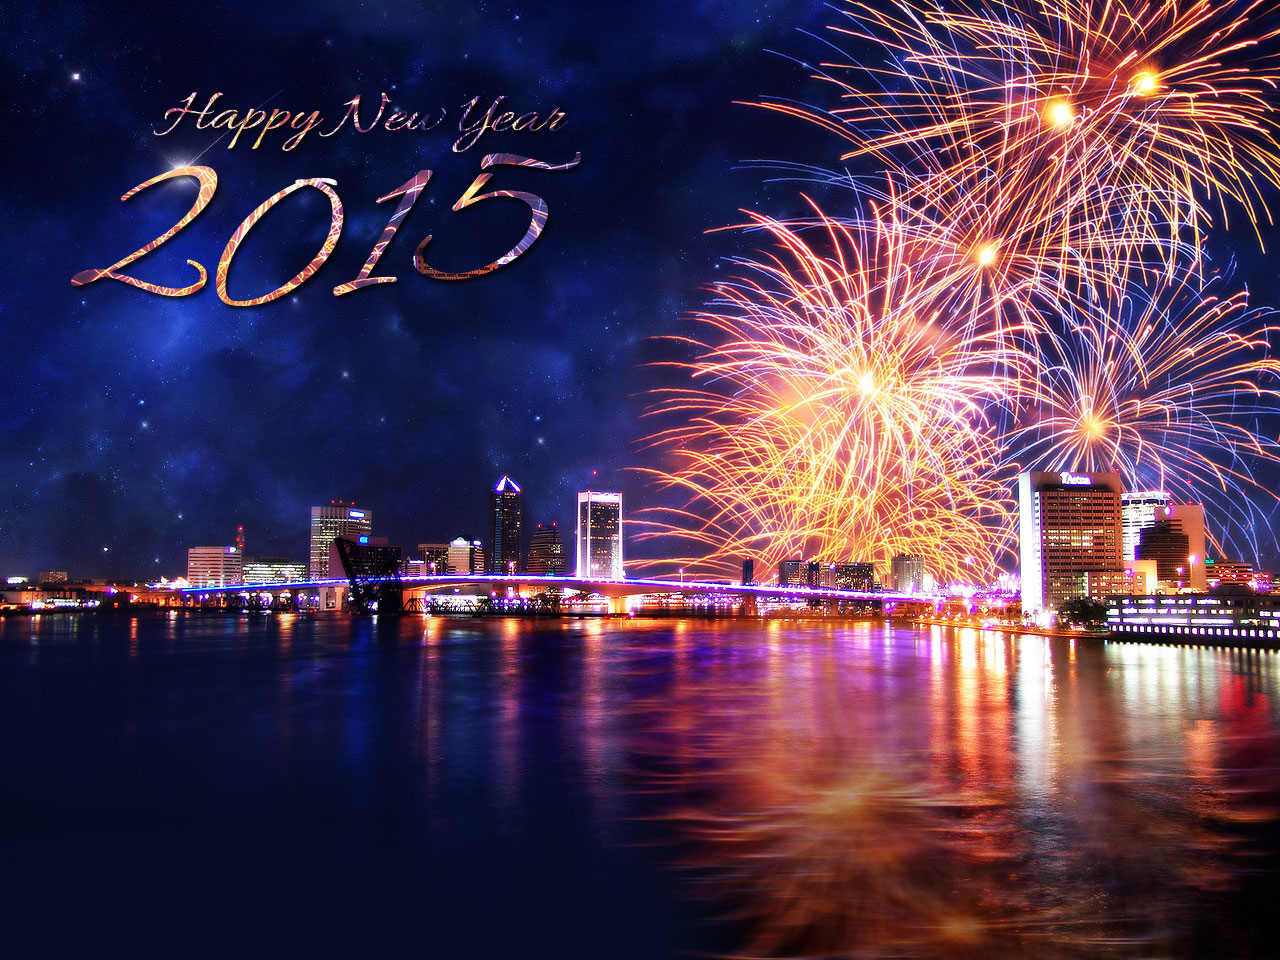 Great Wallpaper Name Prashanth - New-Year-Beautiful_Fireworks_2015  Graphic_58713.jpg